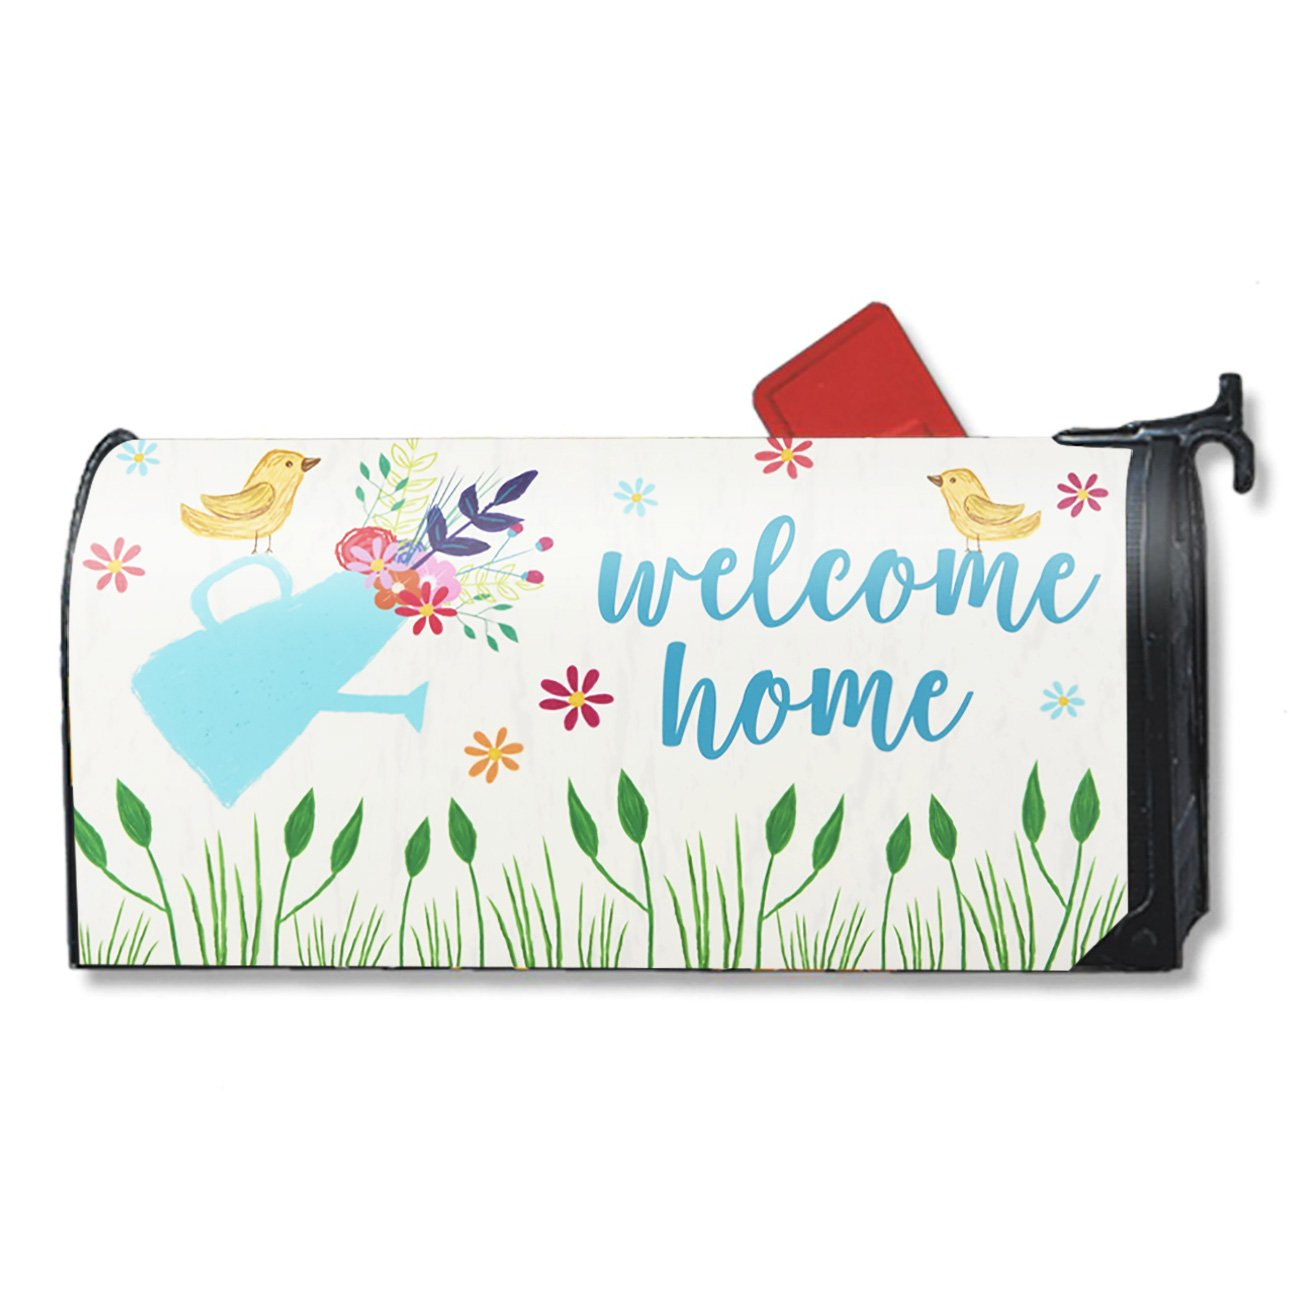 Magnetic Mailbox Cover - Spring Summer Floral Themed, Decorative Vinyl Mailbox Wrap for Standard Size, Birds and Flowers Design - Welcome Home Includes Adhesive Numbers - Multicolor, 17.25 x 20.75 Inc